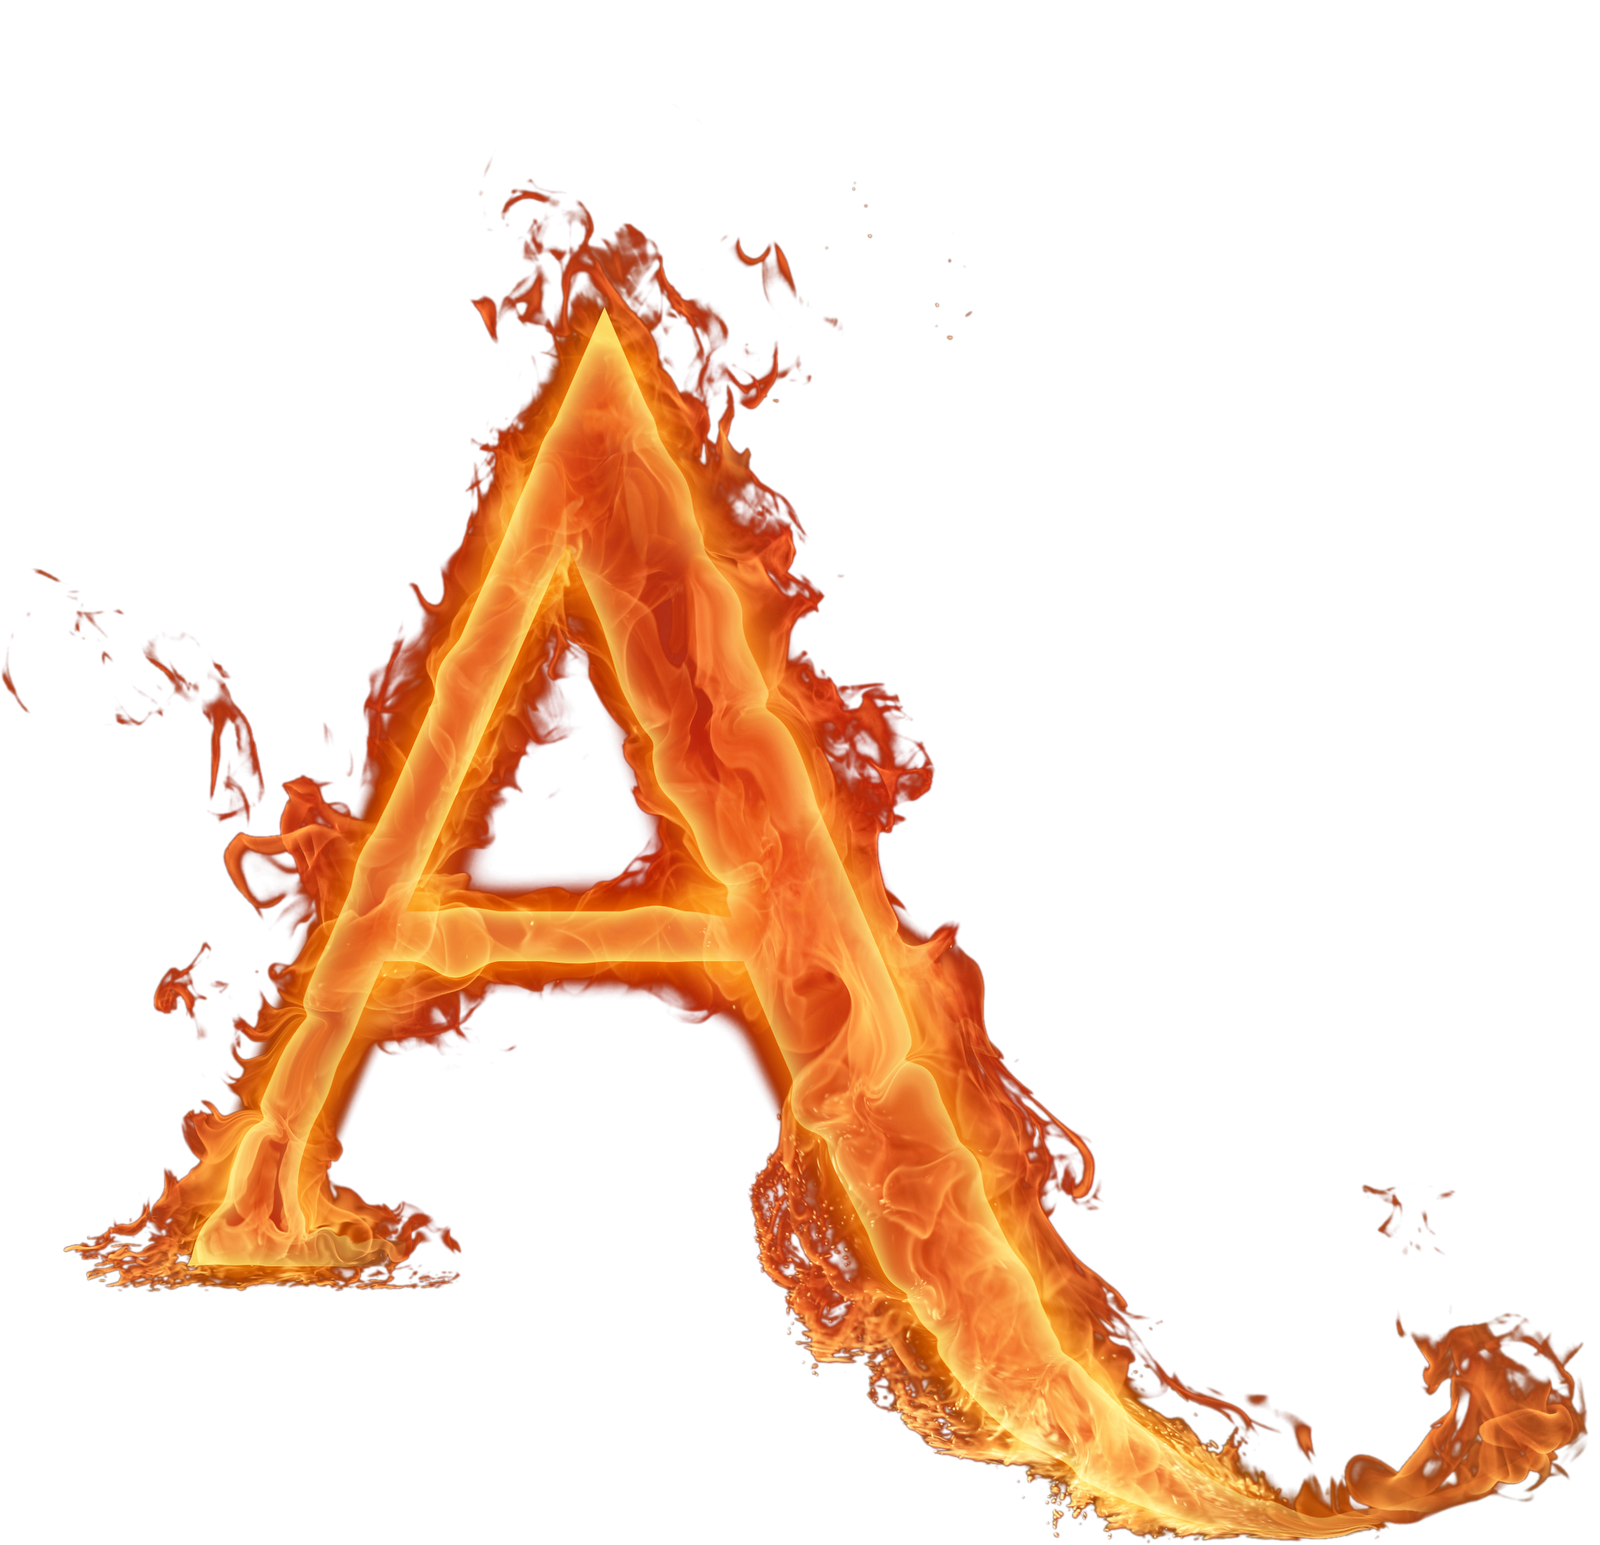 Alphabet fire png. Letras fogo chama letter